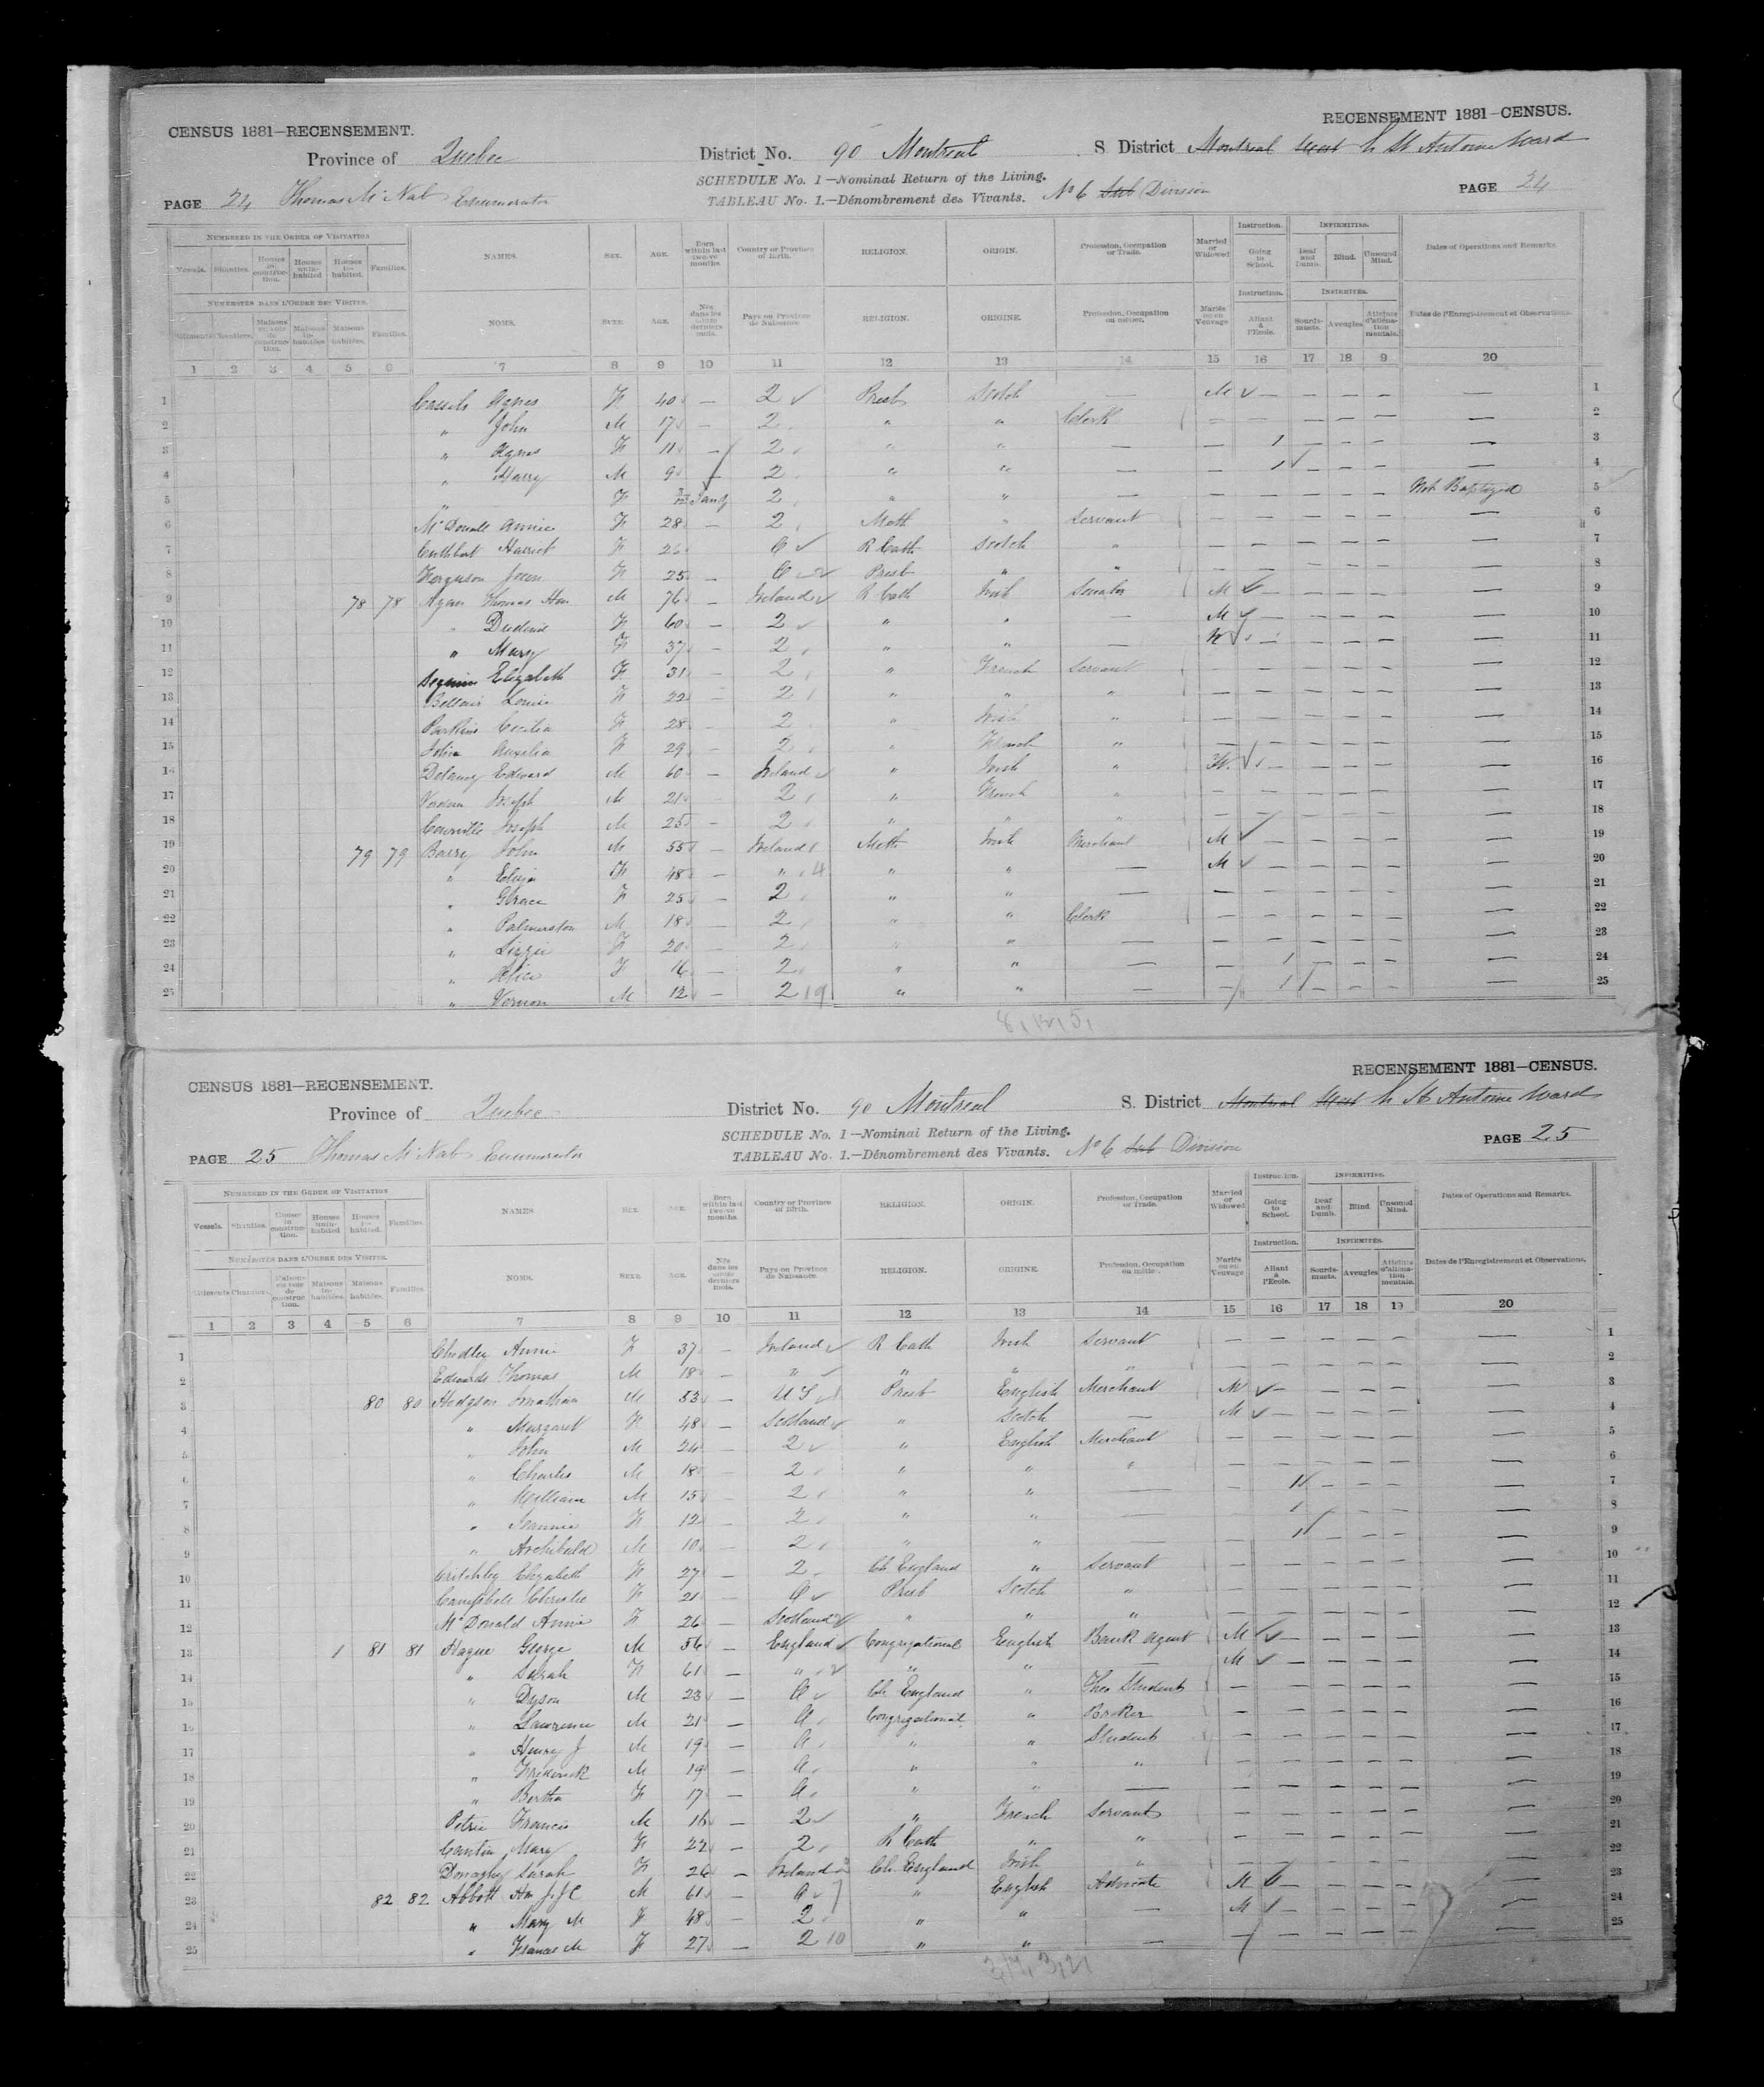 Digitized page of Census of Canada, 1881, Page number 25, for J.J.C. ABBOT